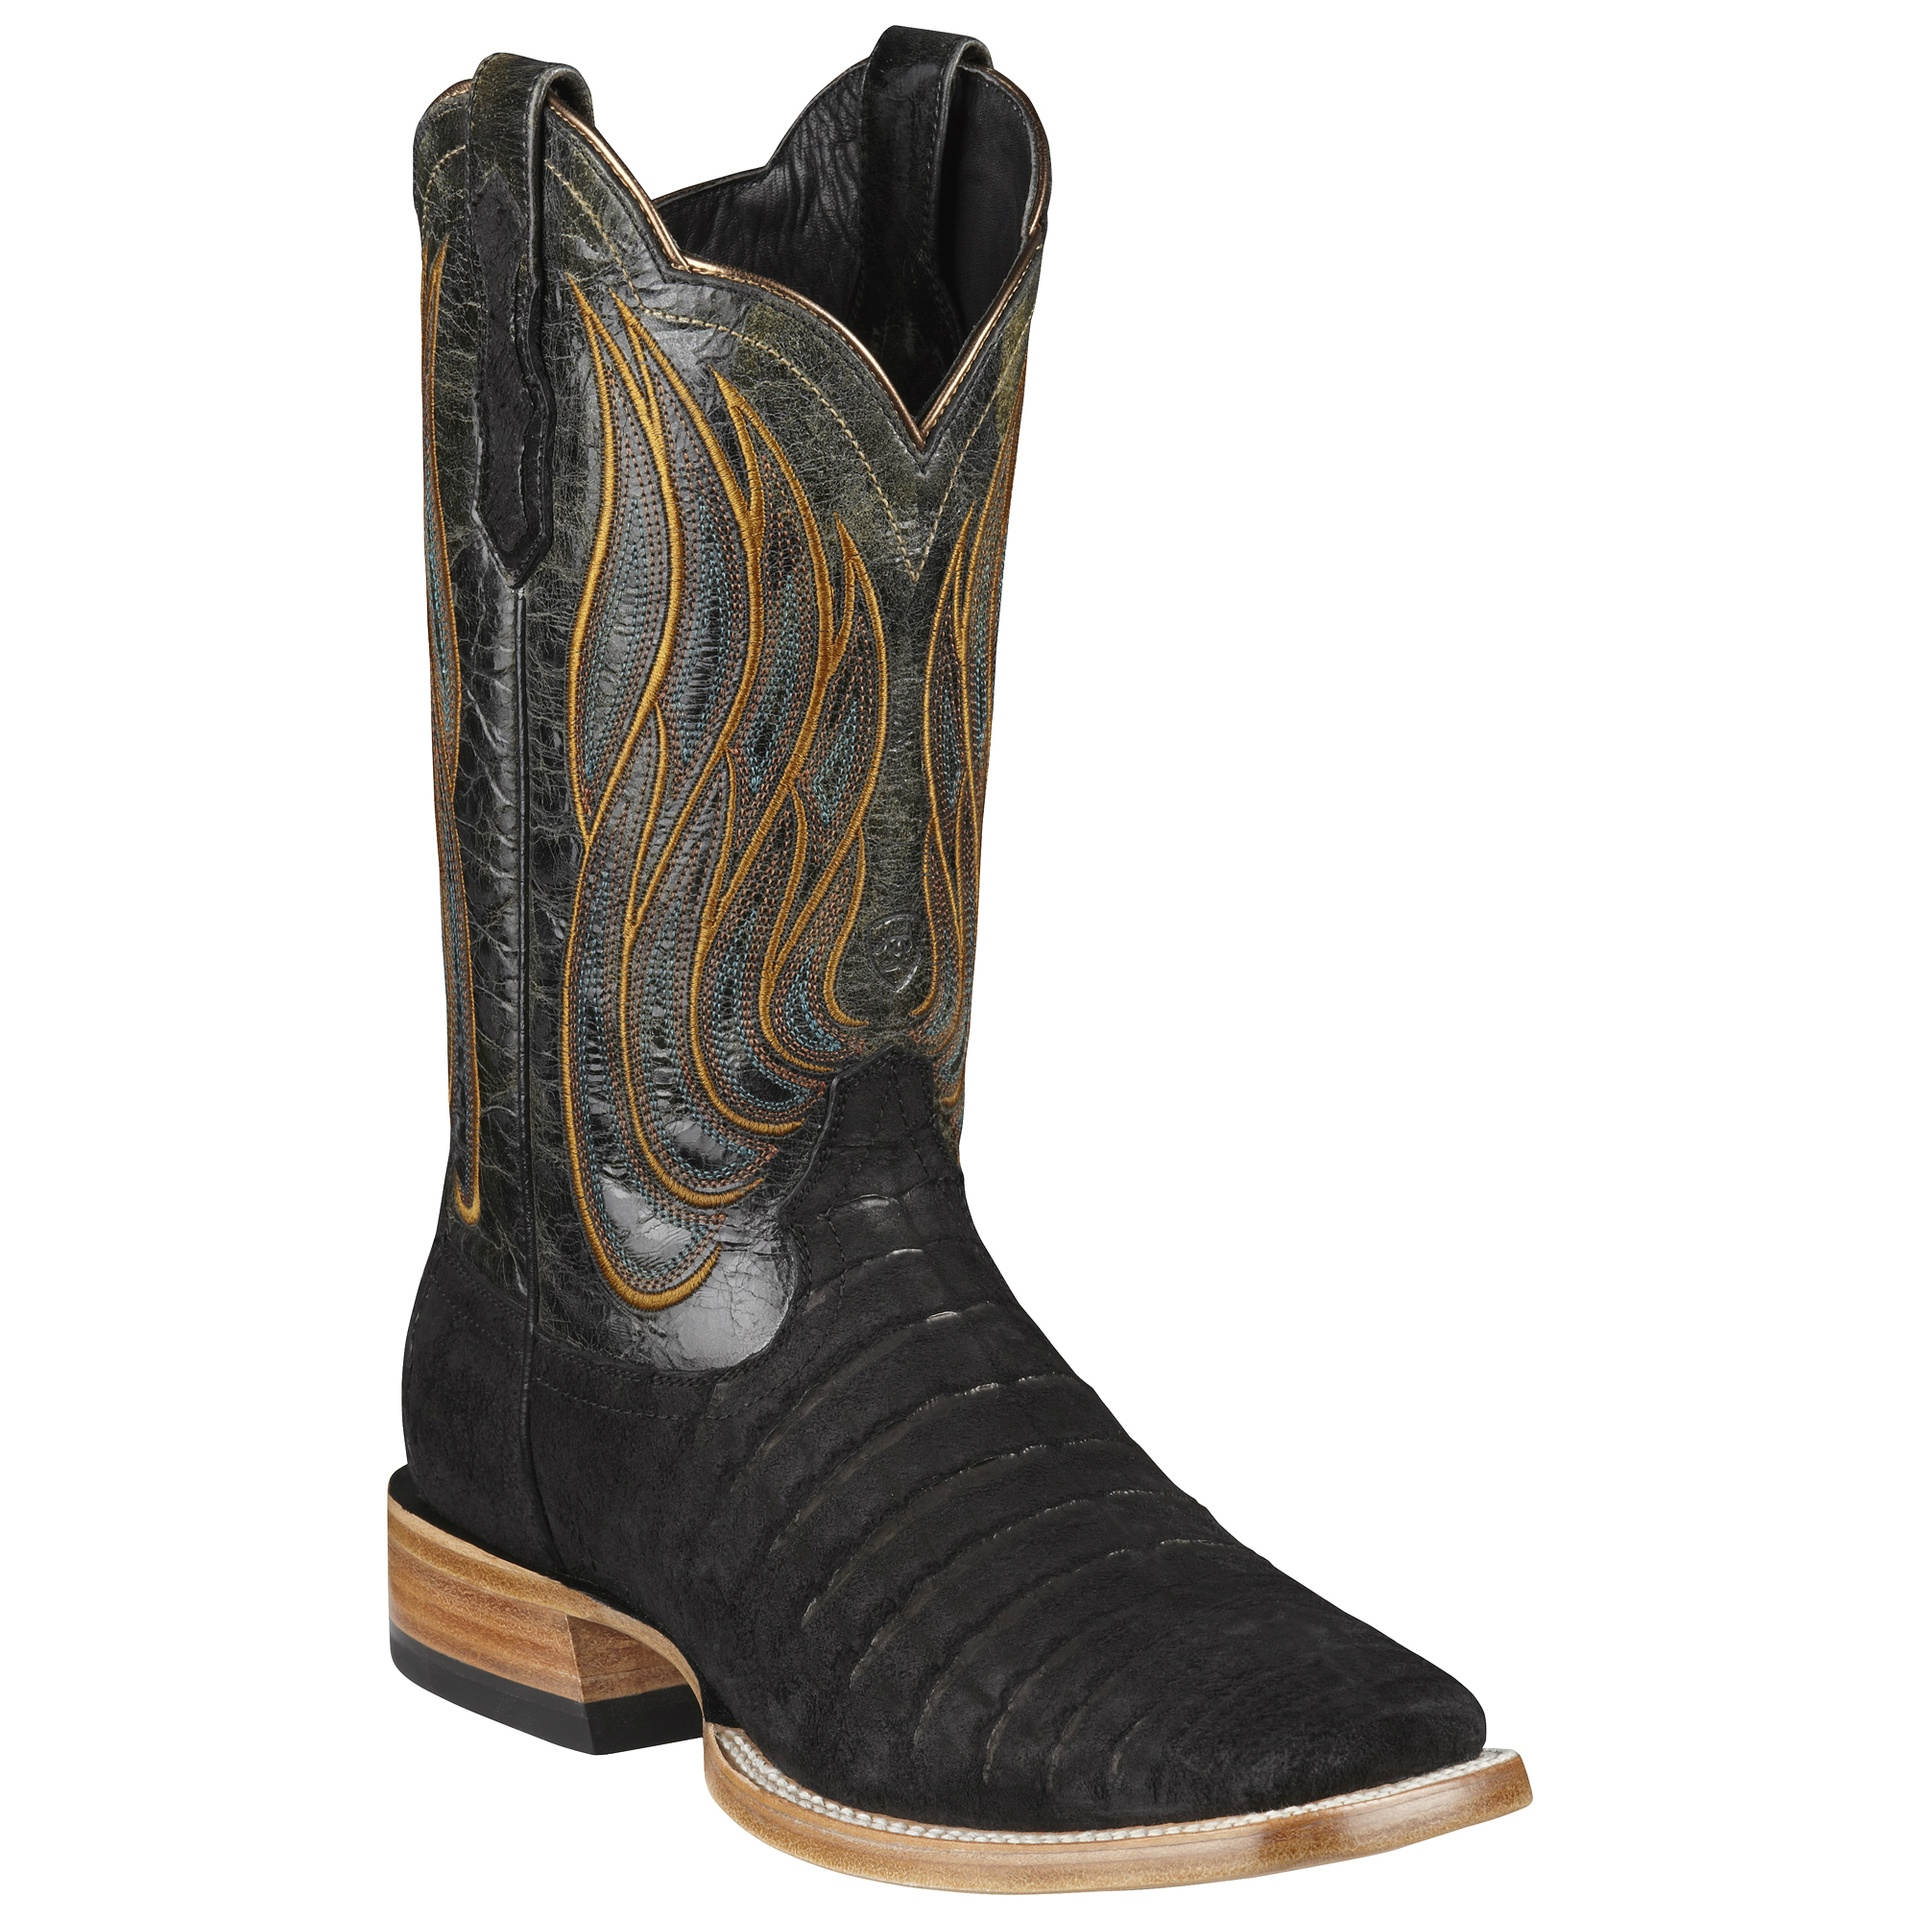 3906611046c Ariat Men's Nitro Caiman Belly - 10010299 - Black